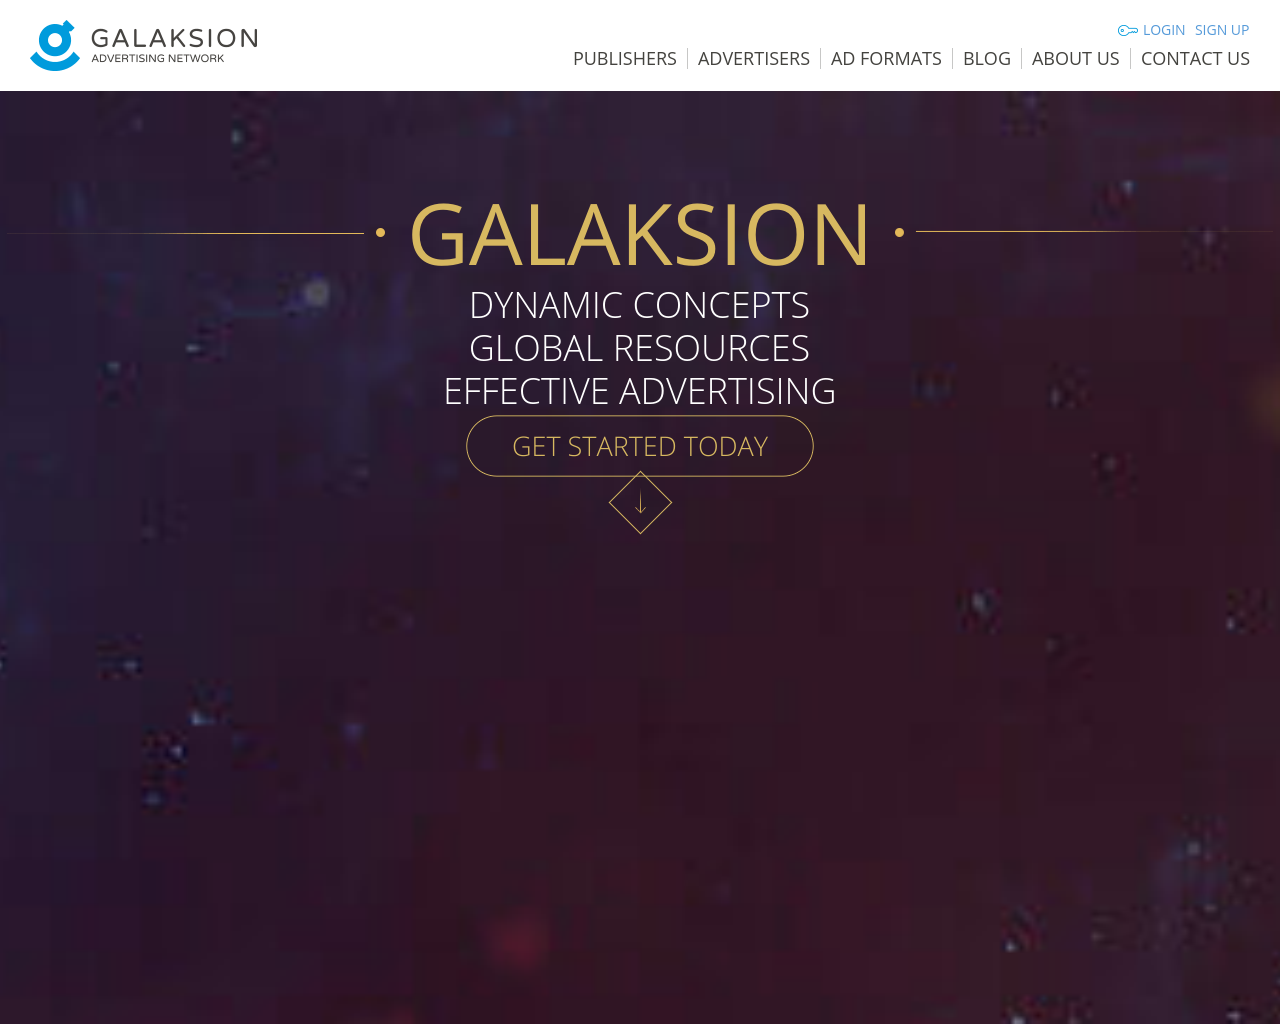 Galaksion-Advertising-Network-Advertising-Reviews-Pricing